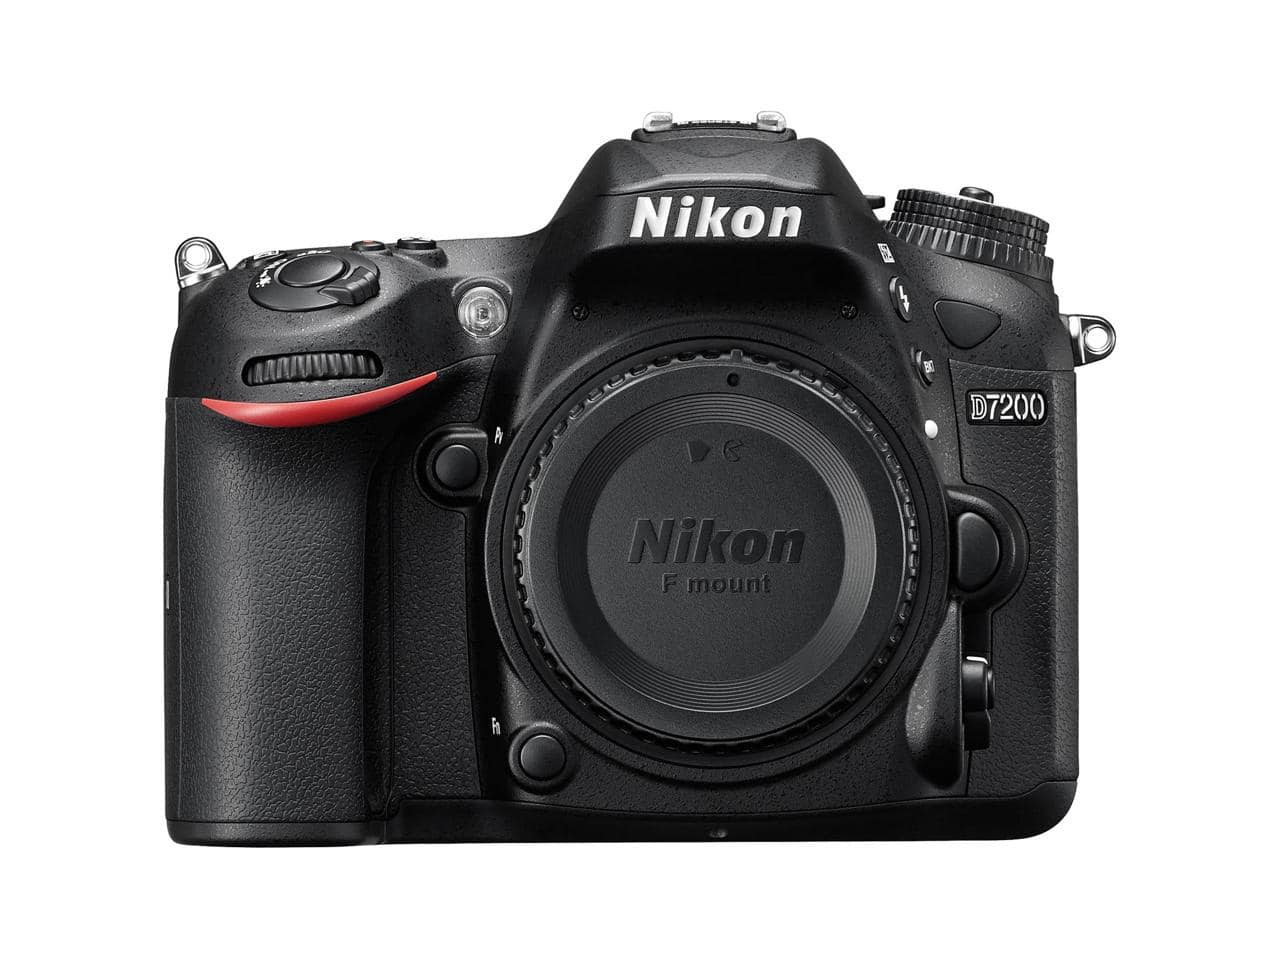 Nikon D7200 DX-format Digital SLR Camera Body, 24.2 MP,  Black - Refurbished $709.95.